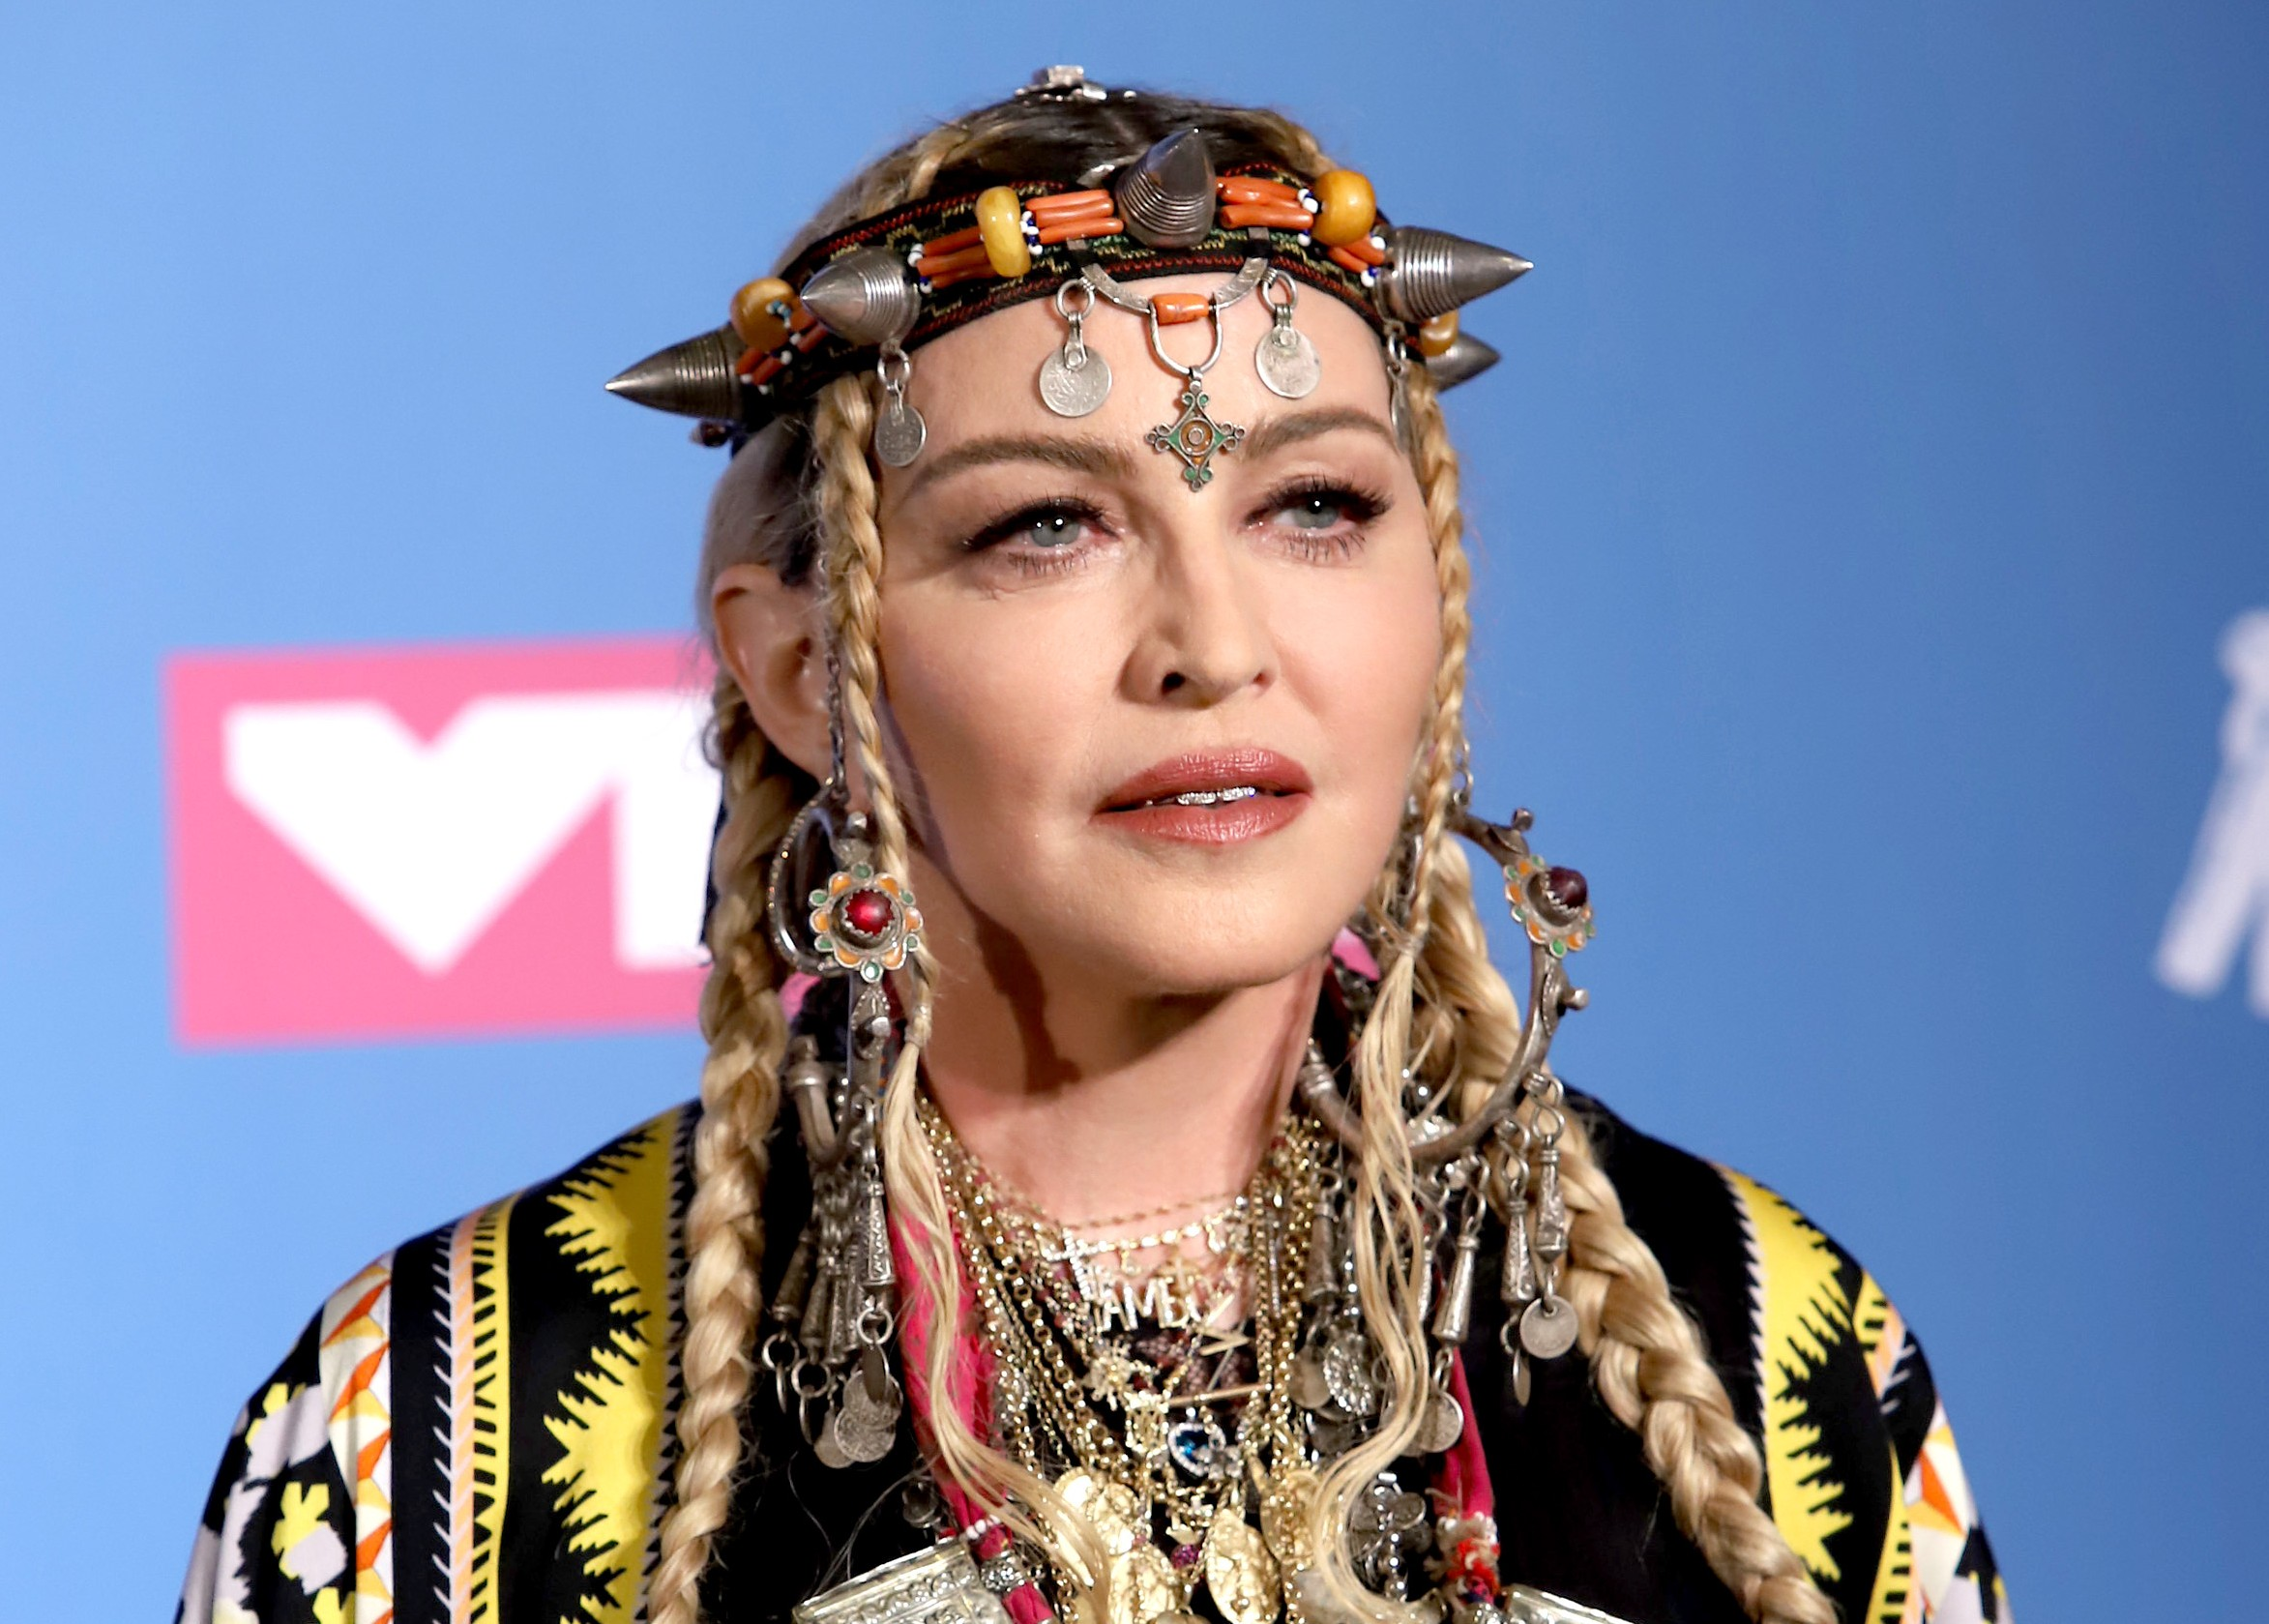 More than a tribute to the Queen of Soul, Madonna's speech seemed like her way of getting back at Aretha Franklin for dying on her 60th birthday and stealing her thunder. (Photo: WENN)